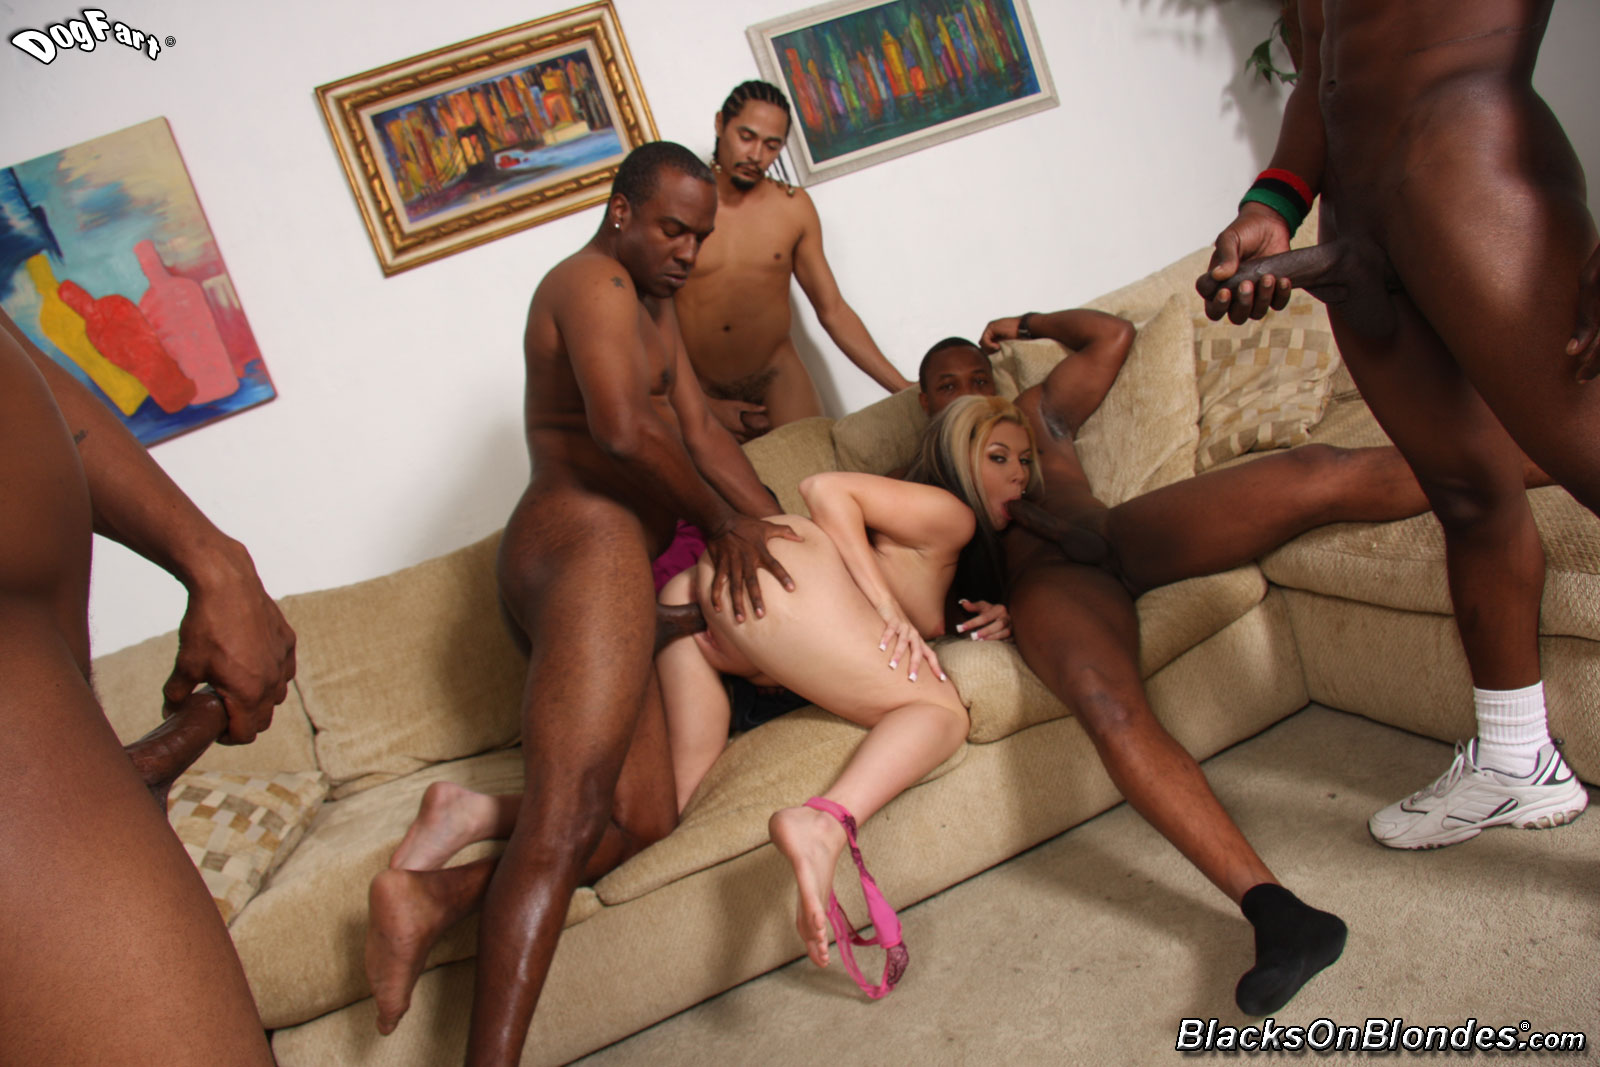 interracial men tumblr sexy